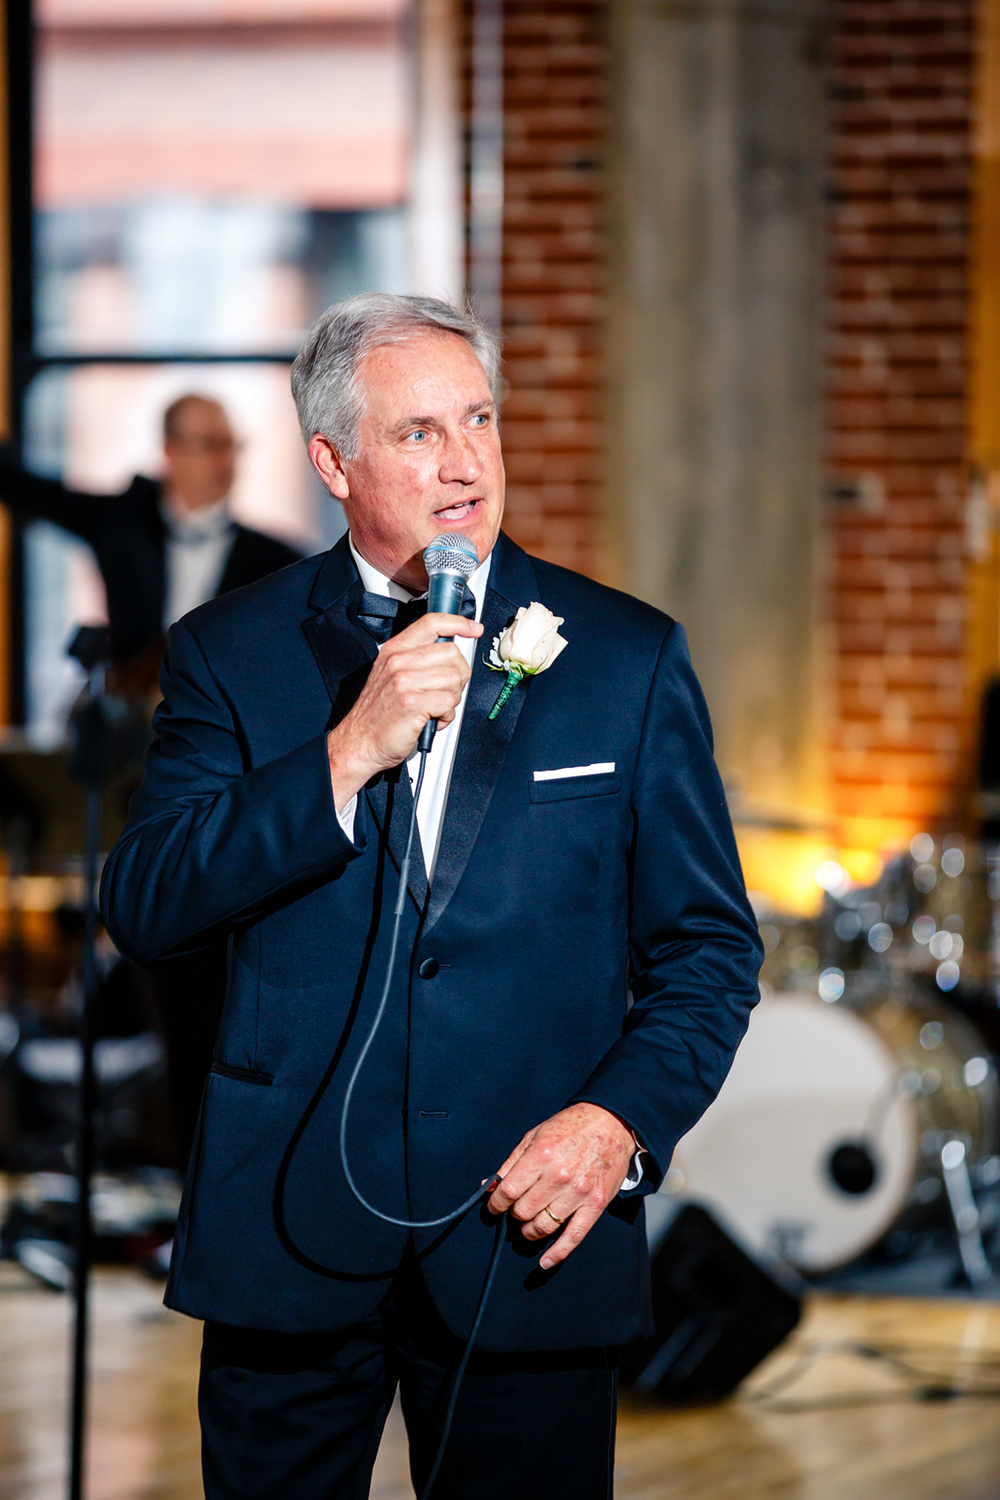 Father of the Bride Speech Gold Wedding Reception at Windows on Washington Downtown St. Louis Wedding Photographers by Oldani Photography 1.jpg